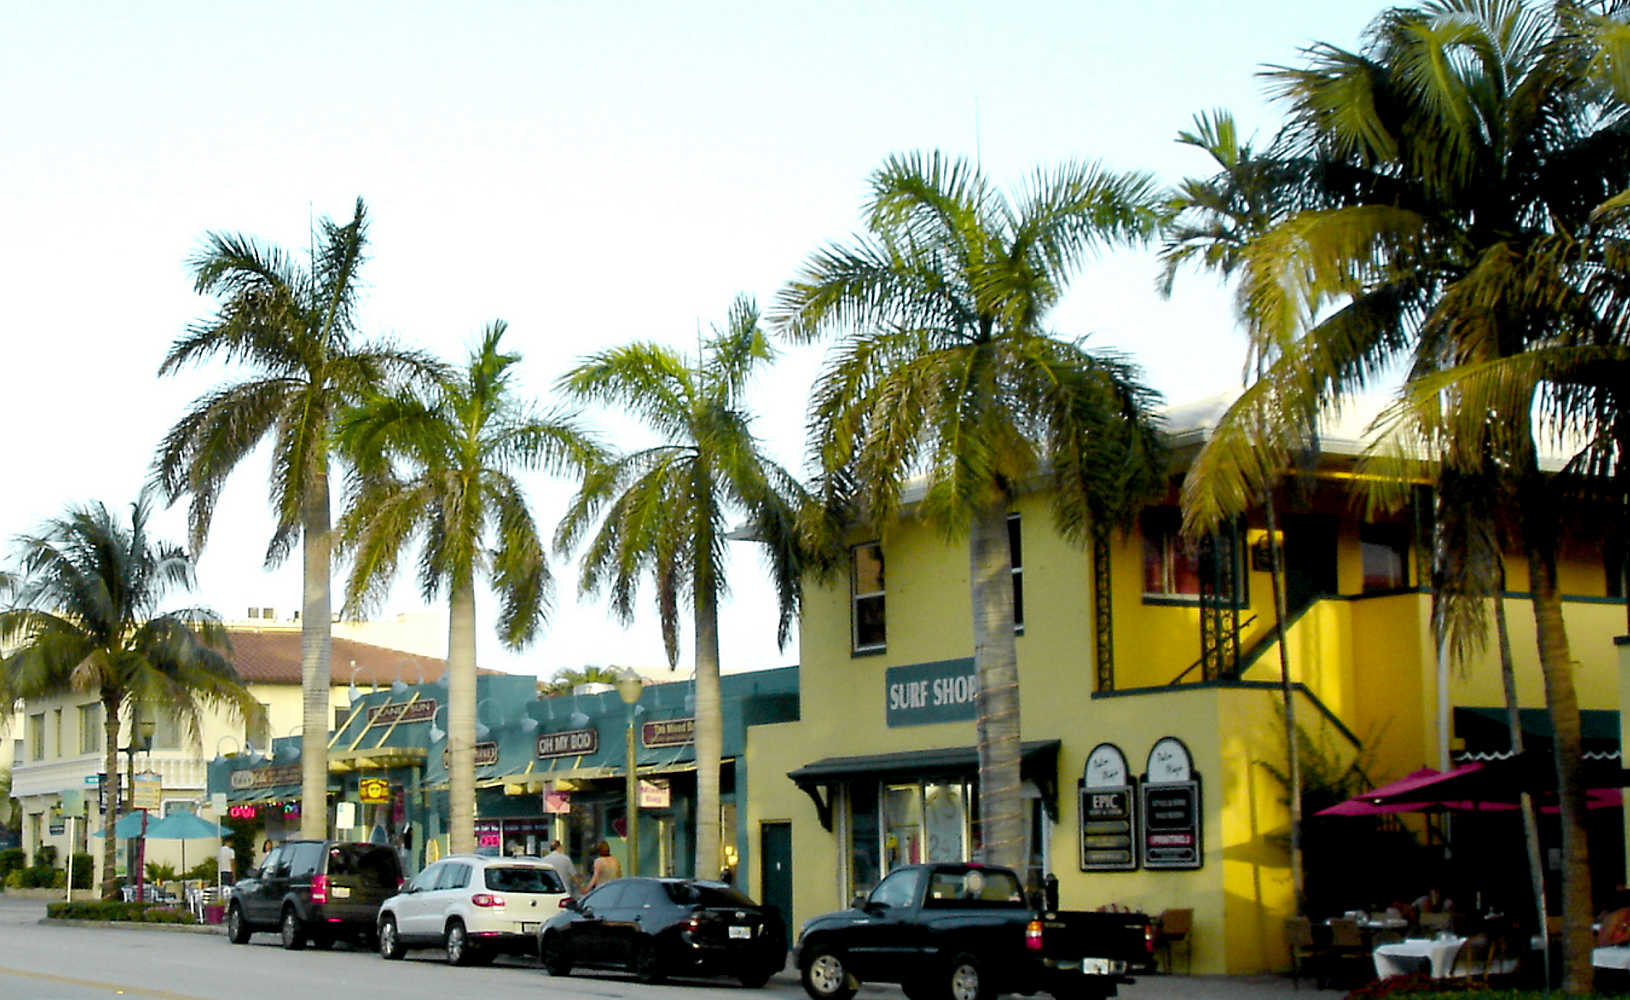 Delray Beach's Atlantic Ave shopping